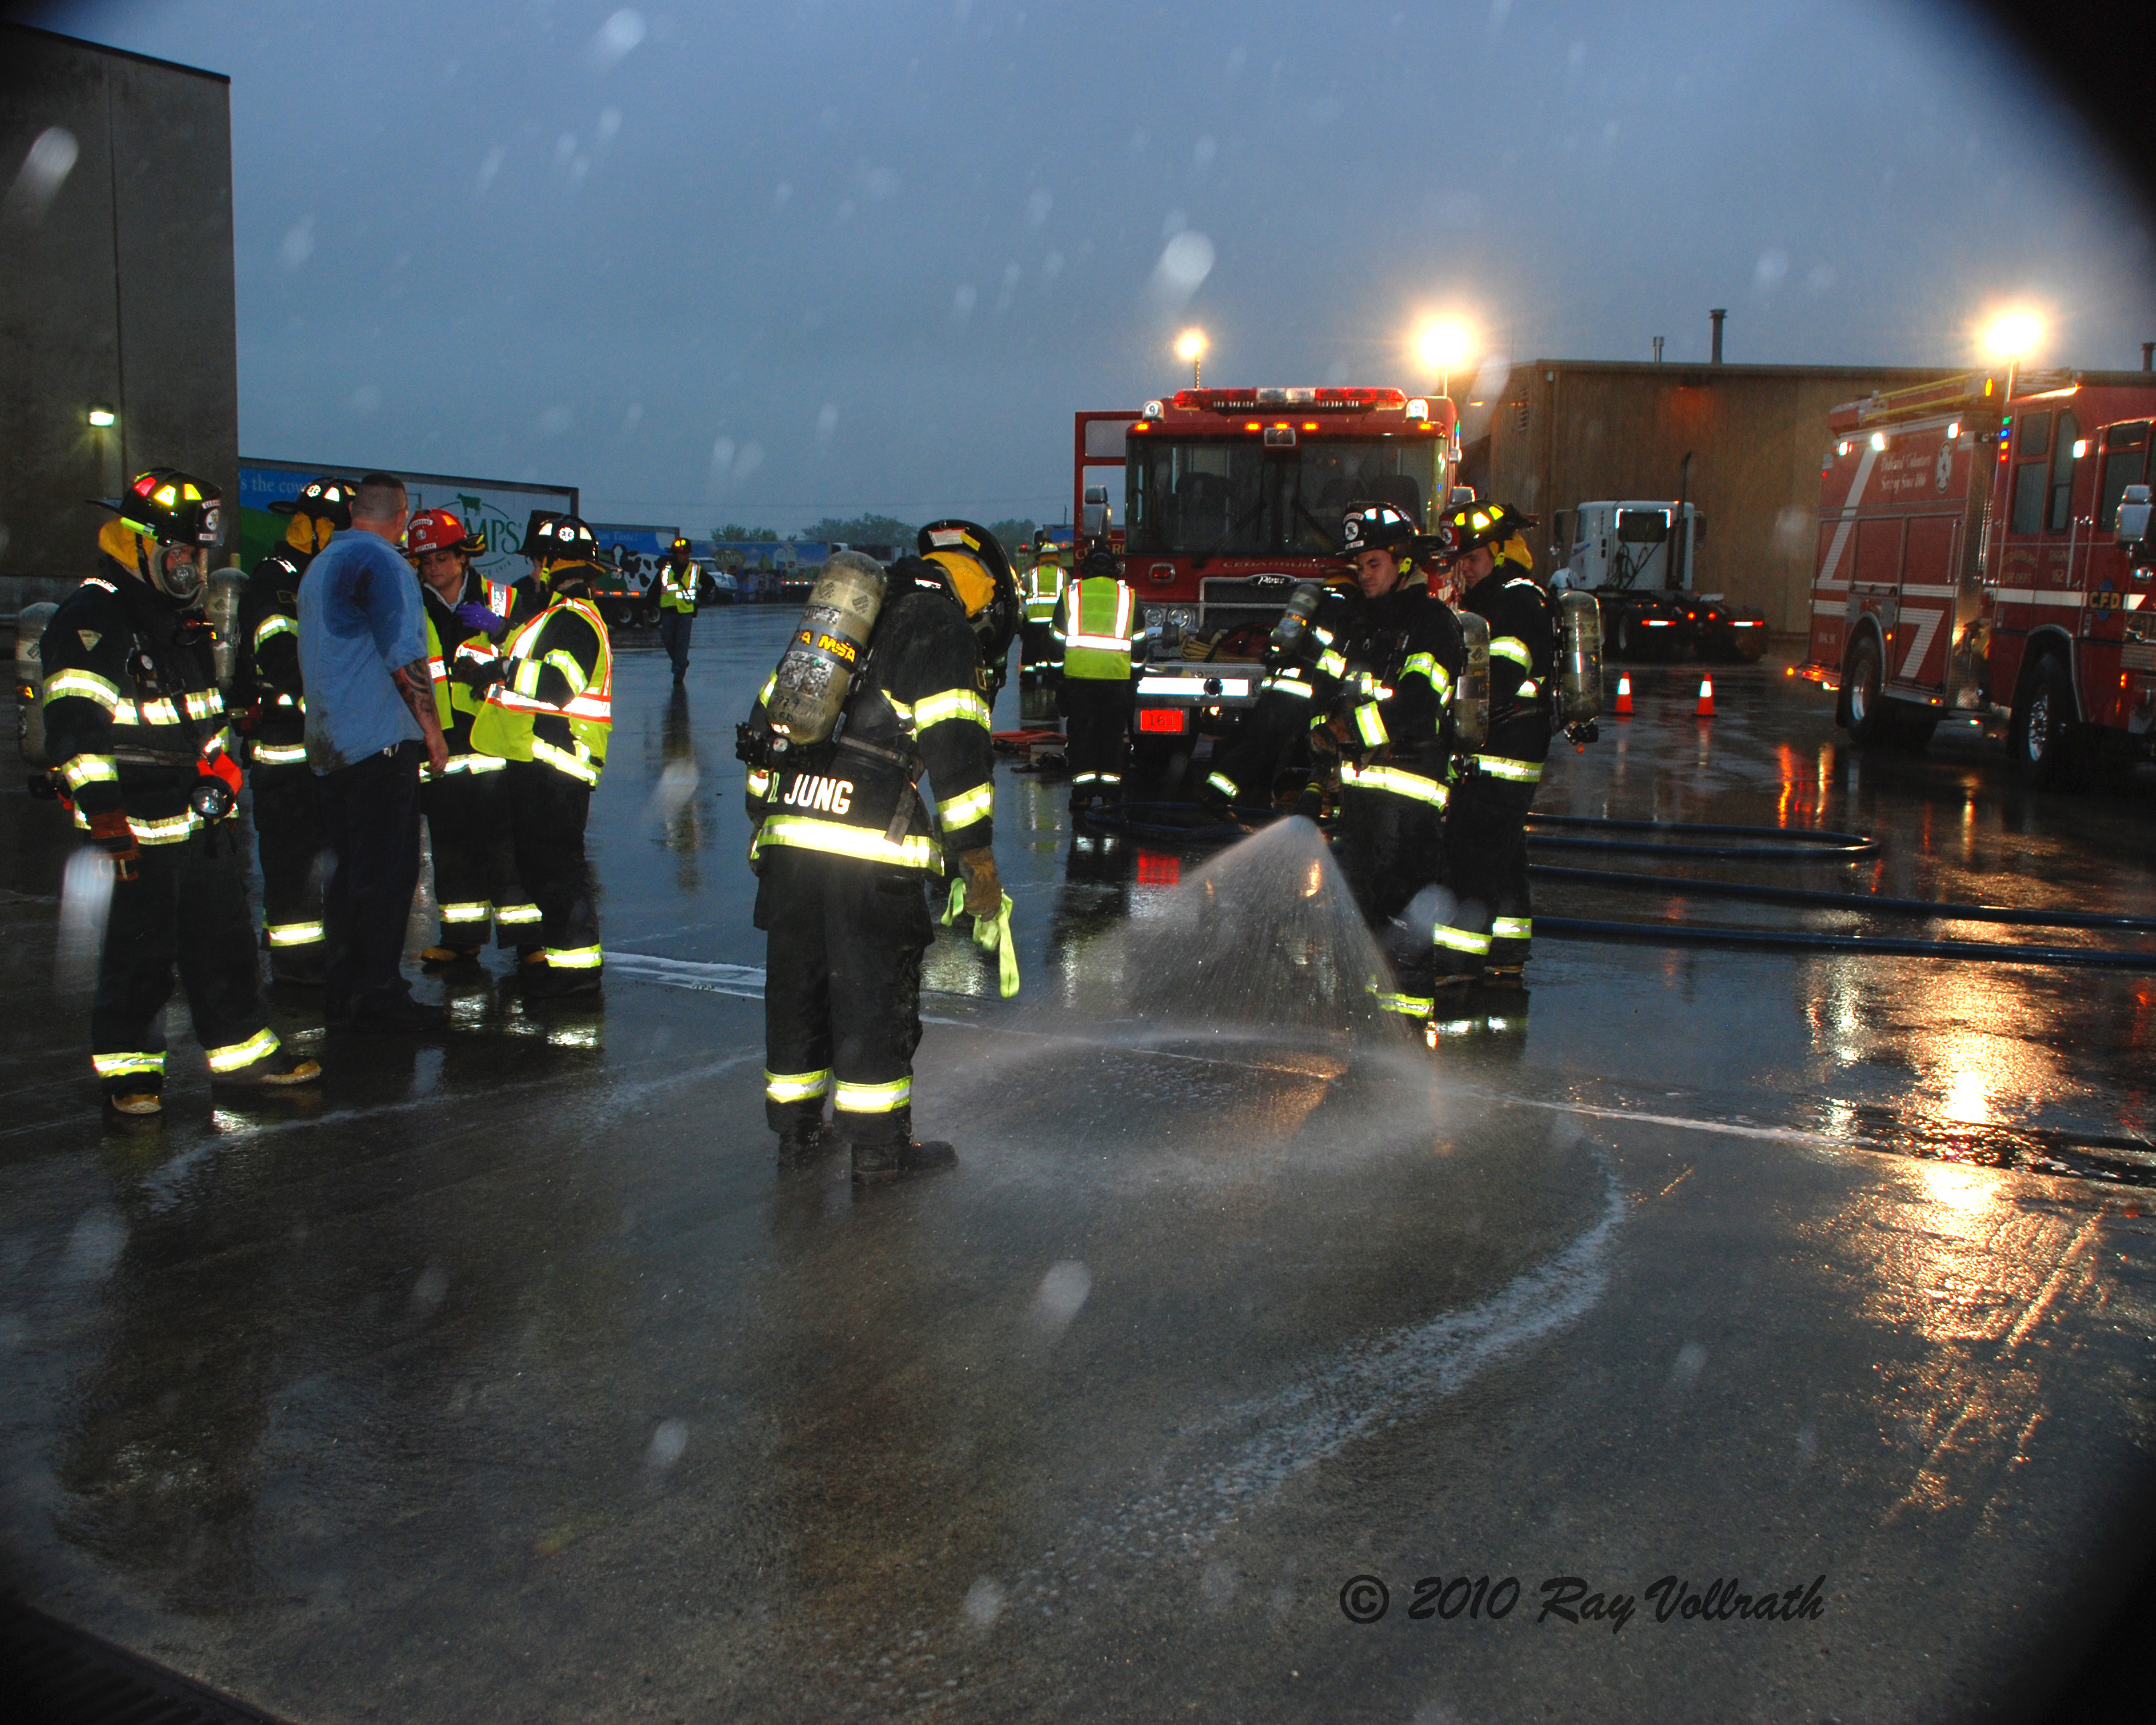 Firehose in Rain